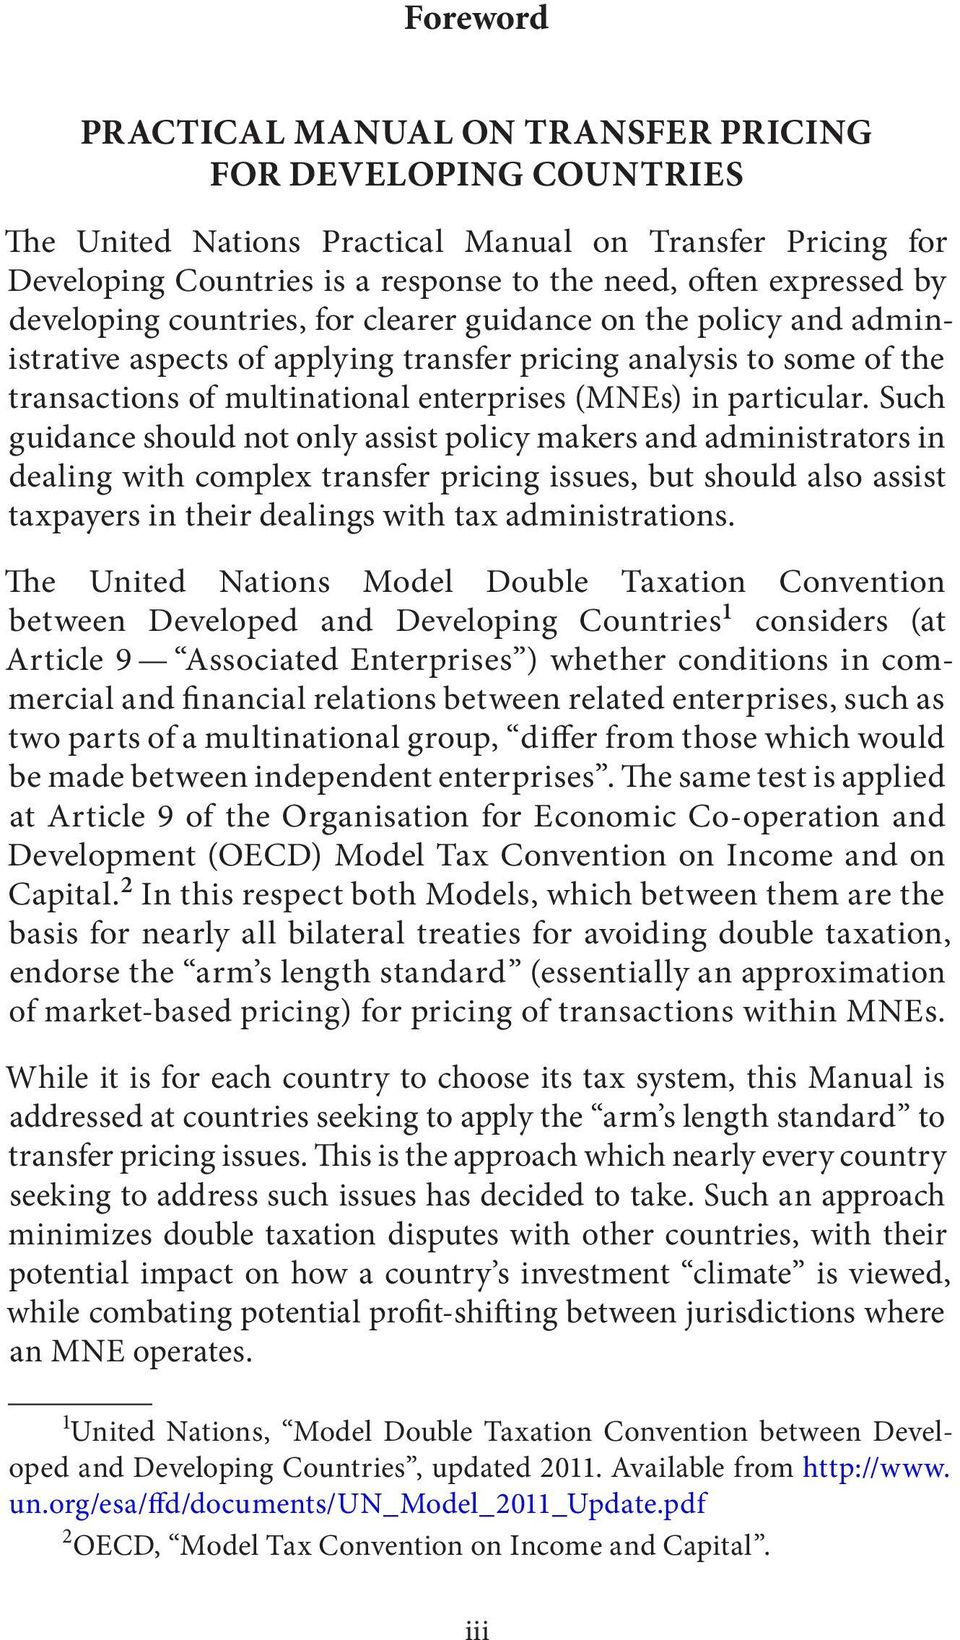 Such guidance should not only assist policy makers and administrators in dealing with complex transfer pricing issues, but should also assist taxpayers in their dealings with tax administrations.